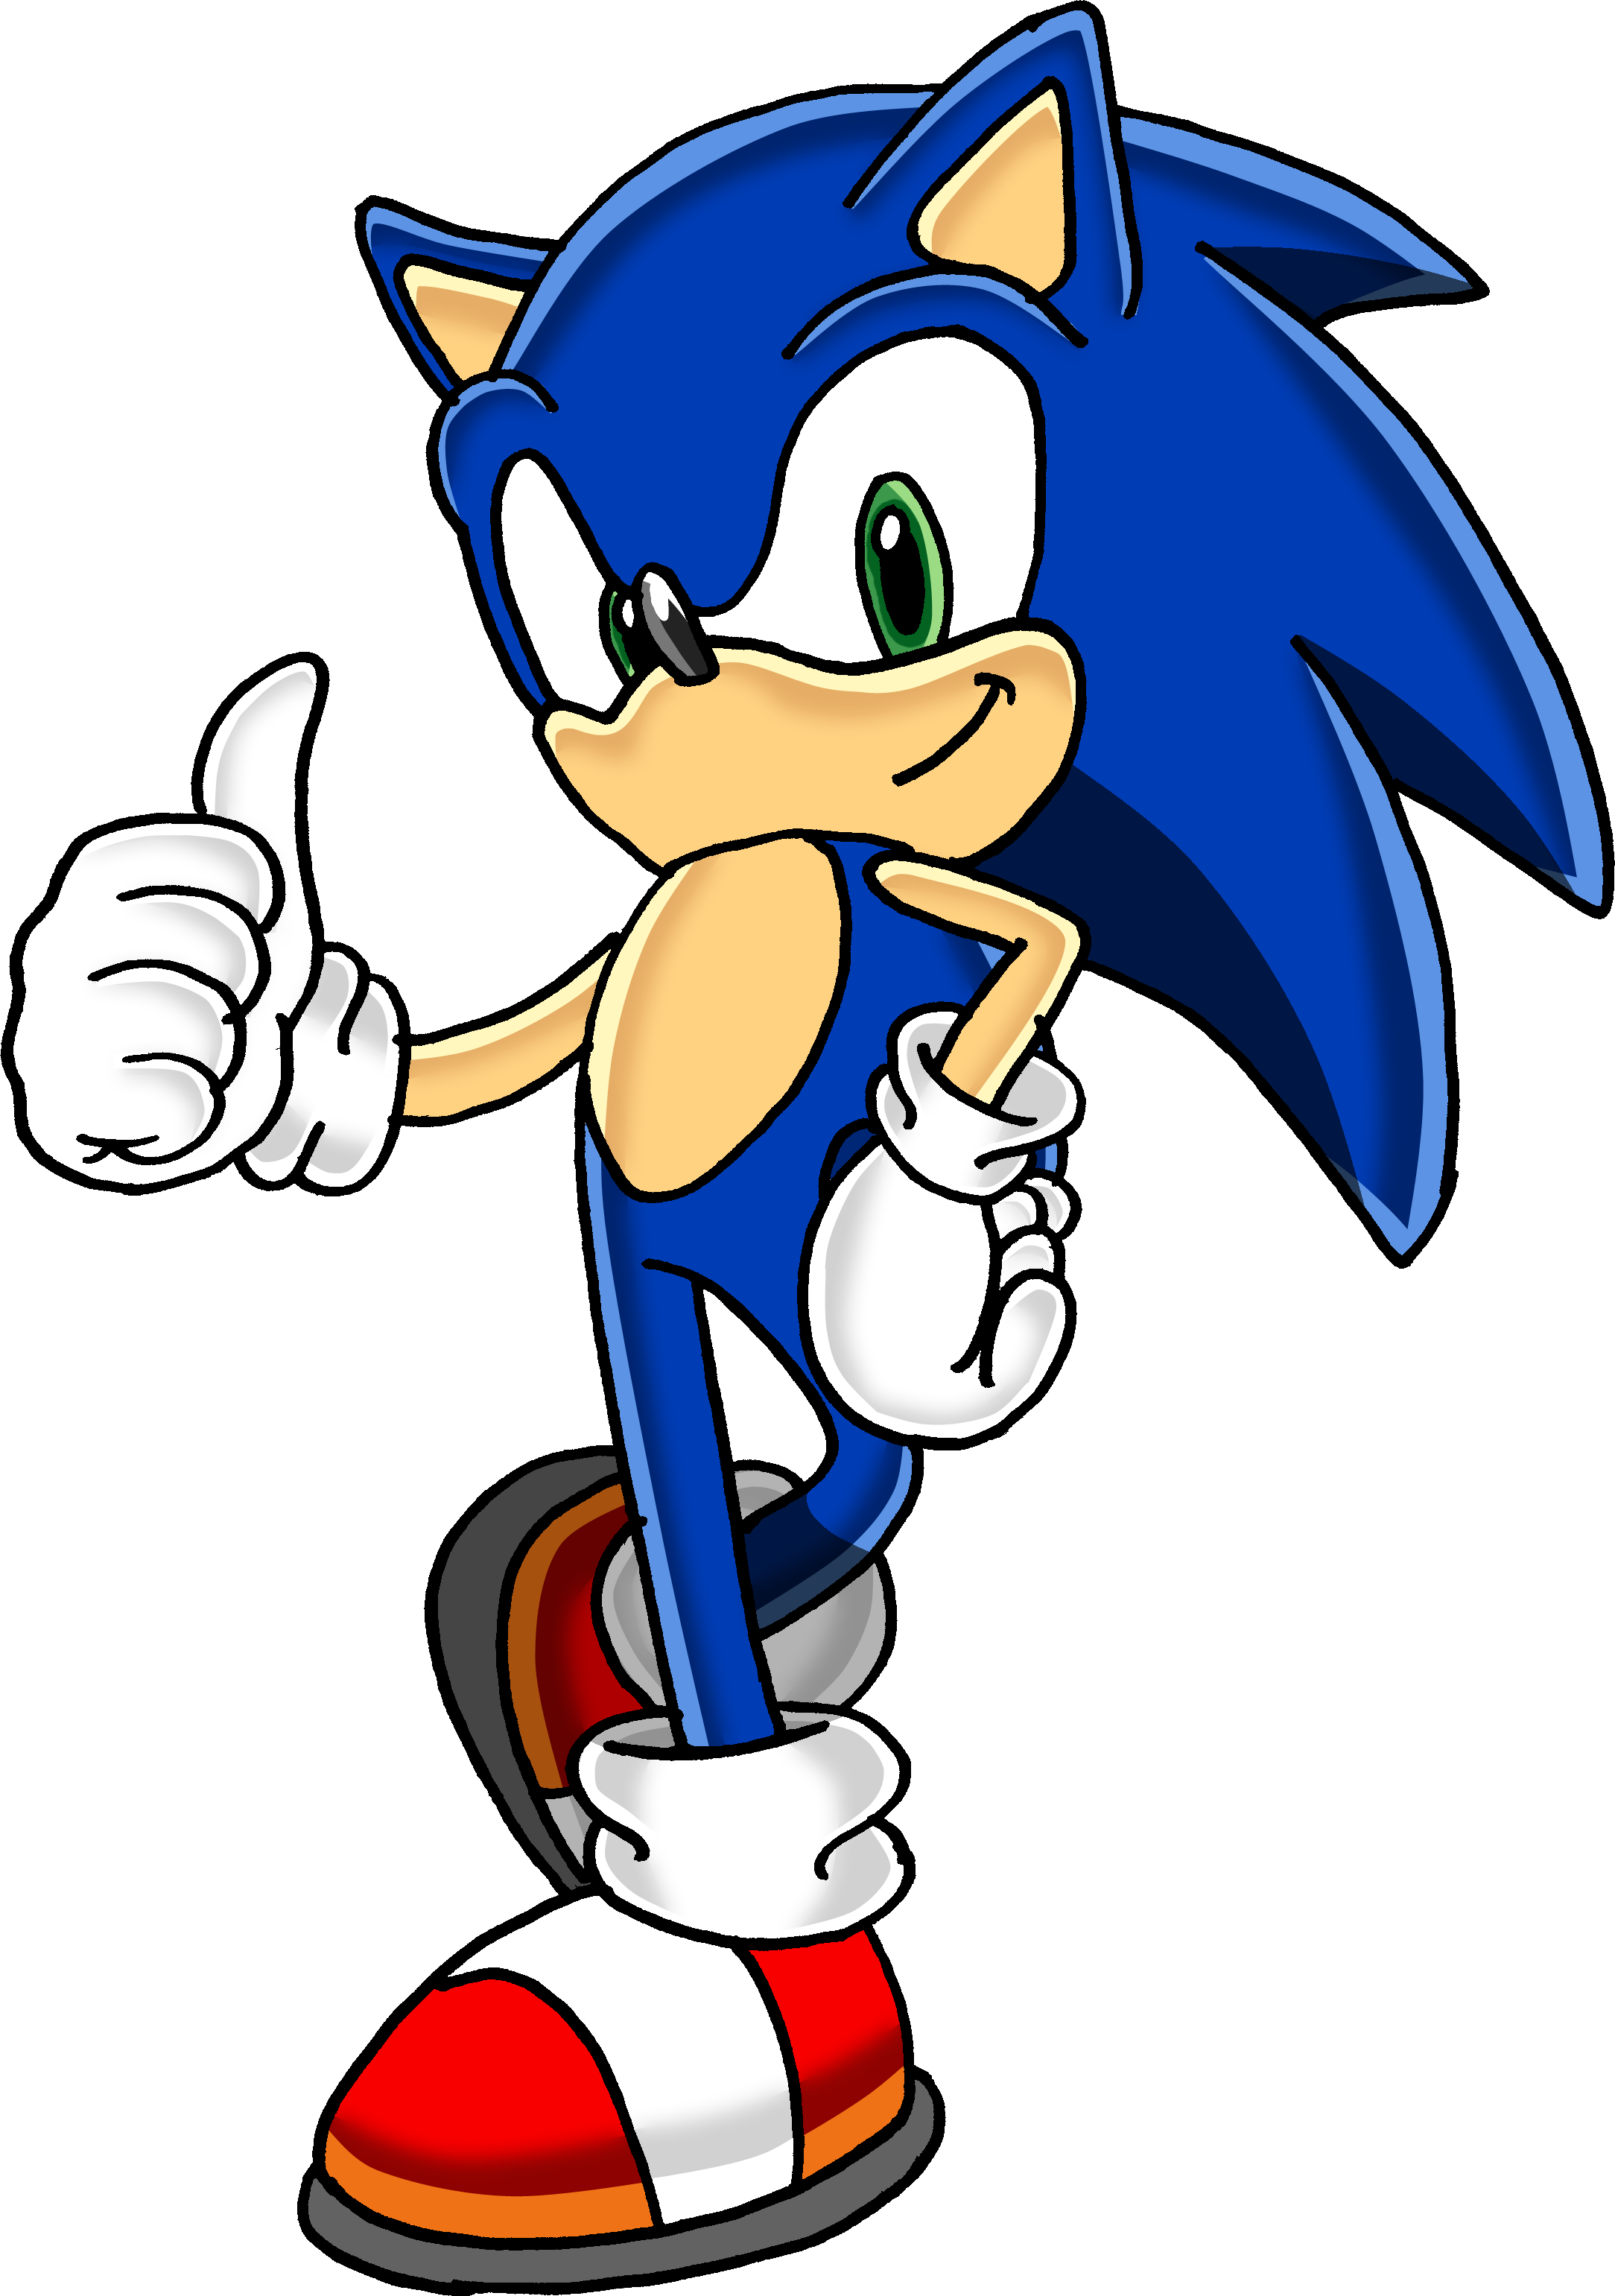 Sonic The Hedgehog PNG - 13003